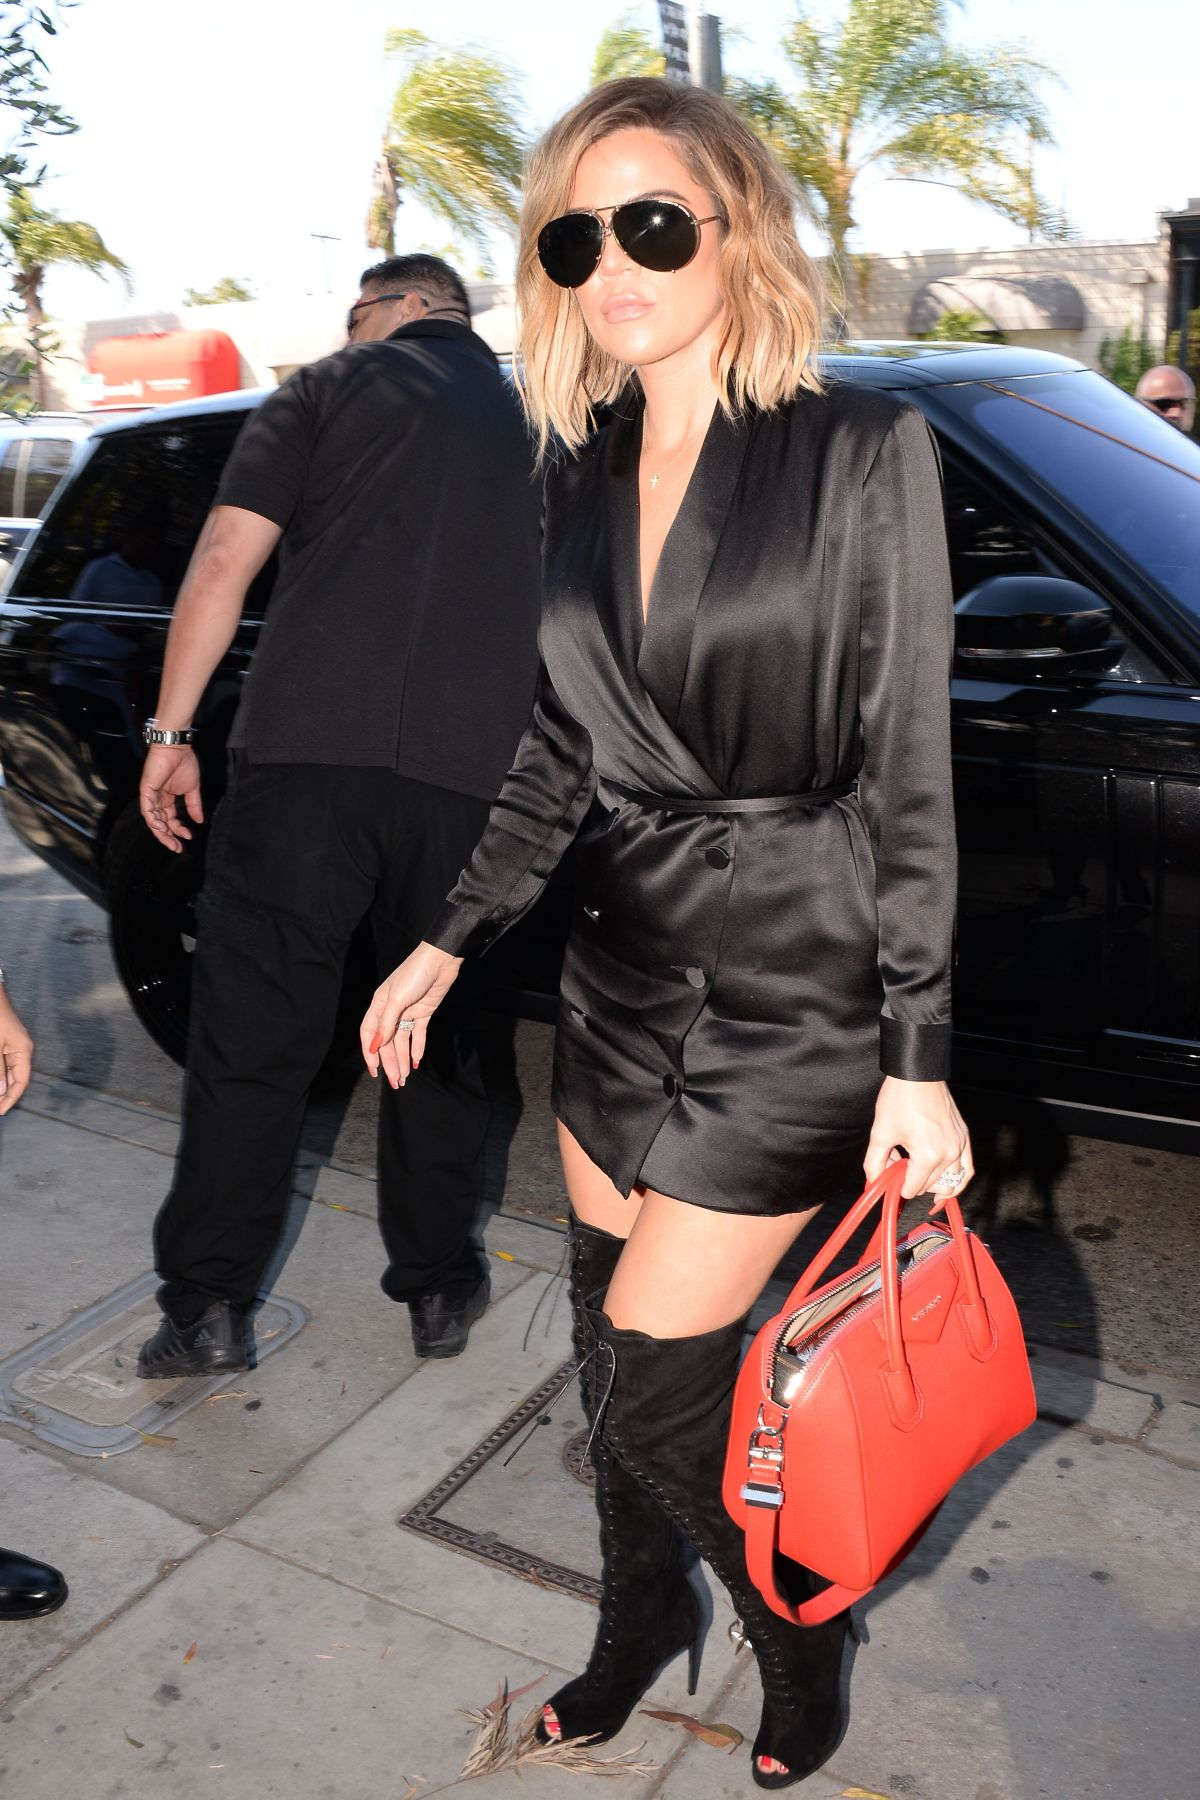 KHLOE KARDASHIAN Out and About in Los Angeles 04/20/2017